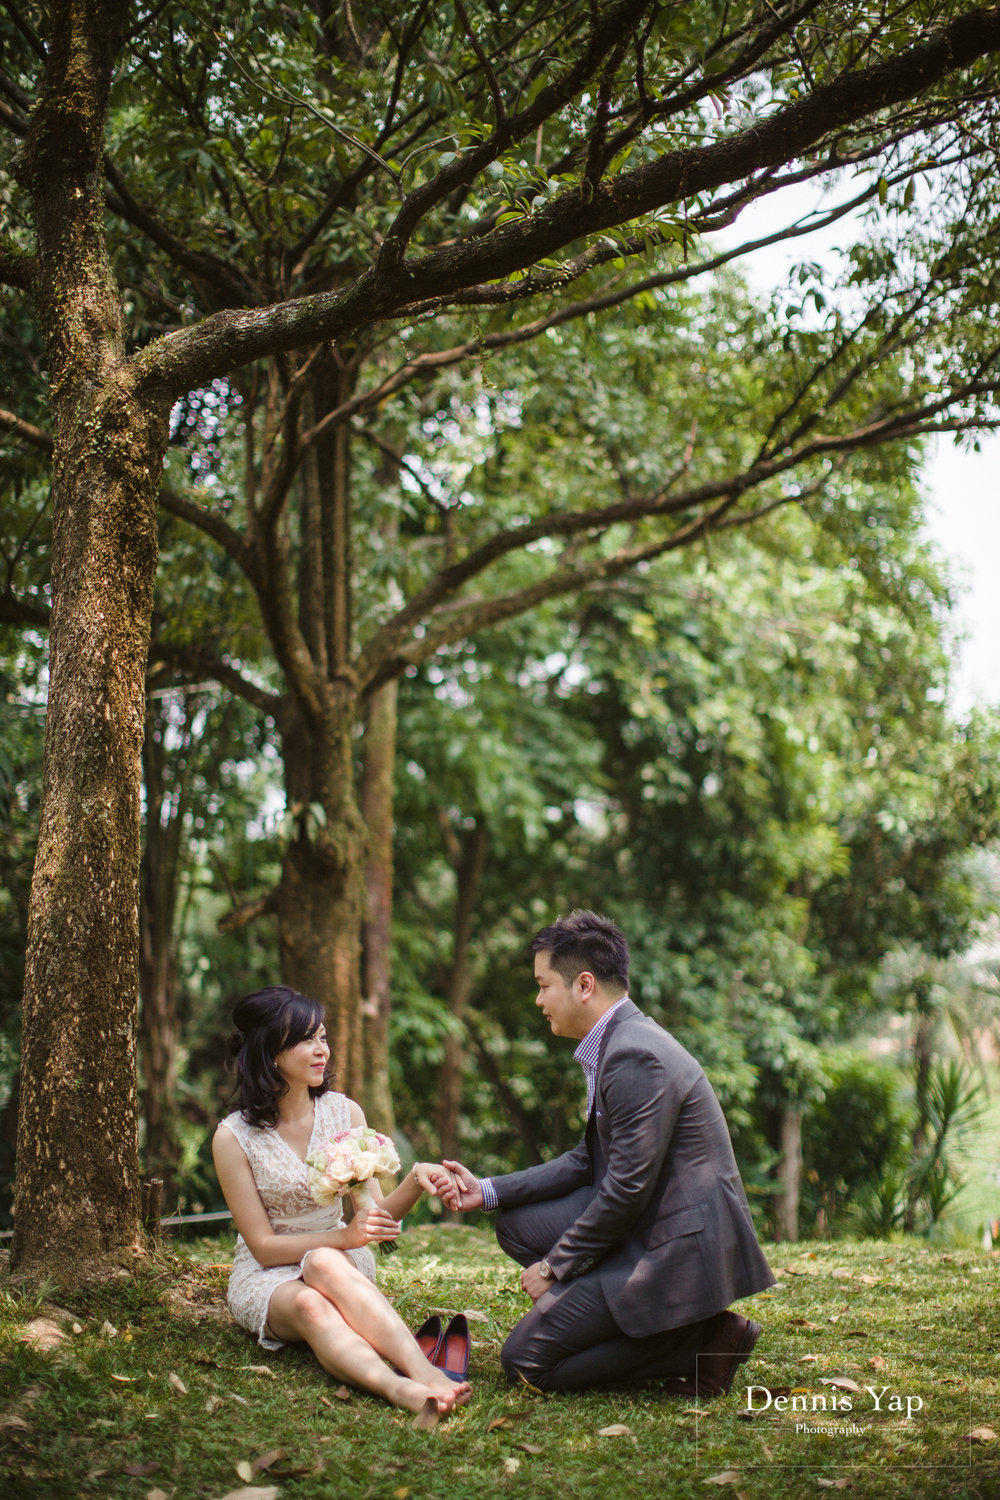 jacky kerry registration of marriage ROM dennis yap photography-7.jpg